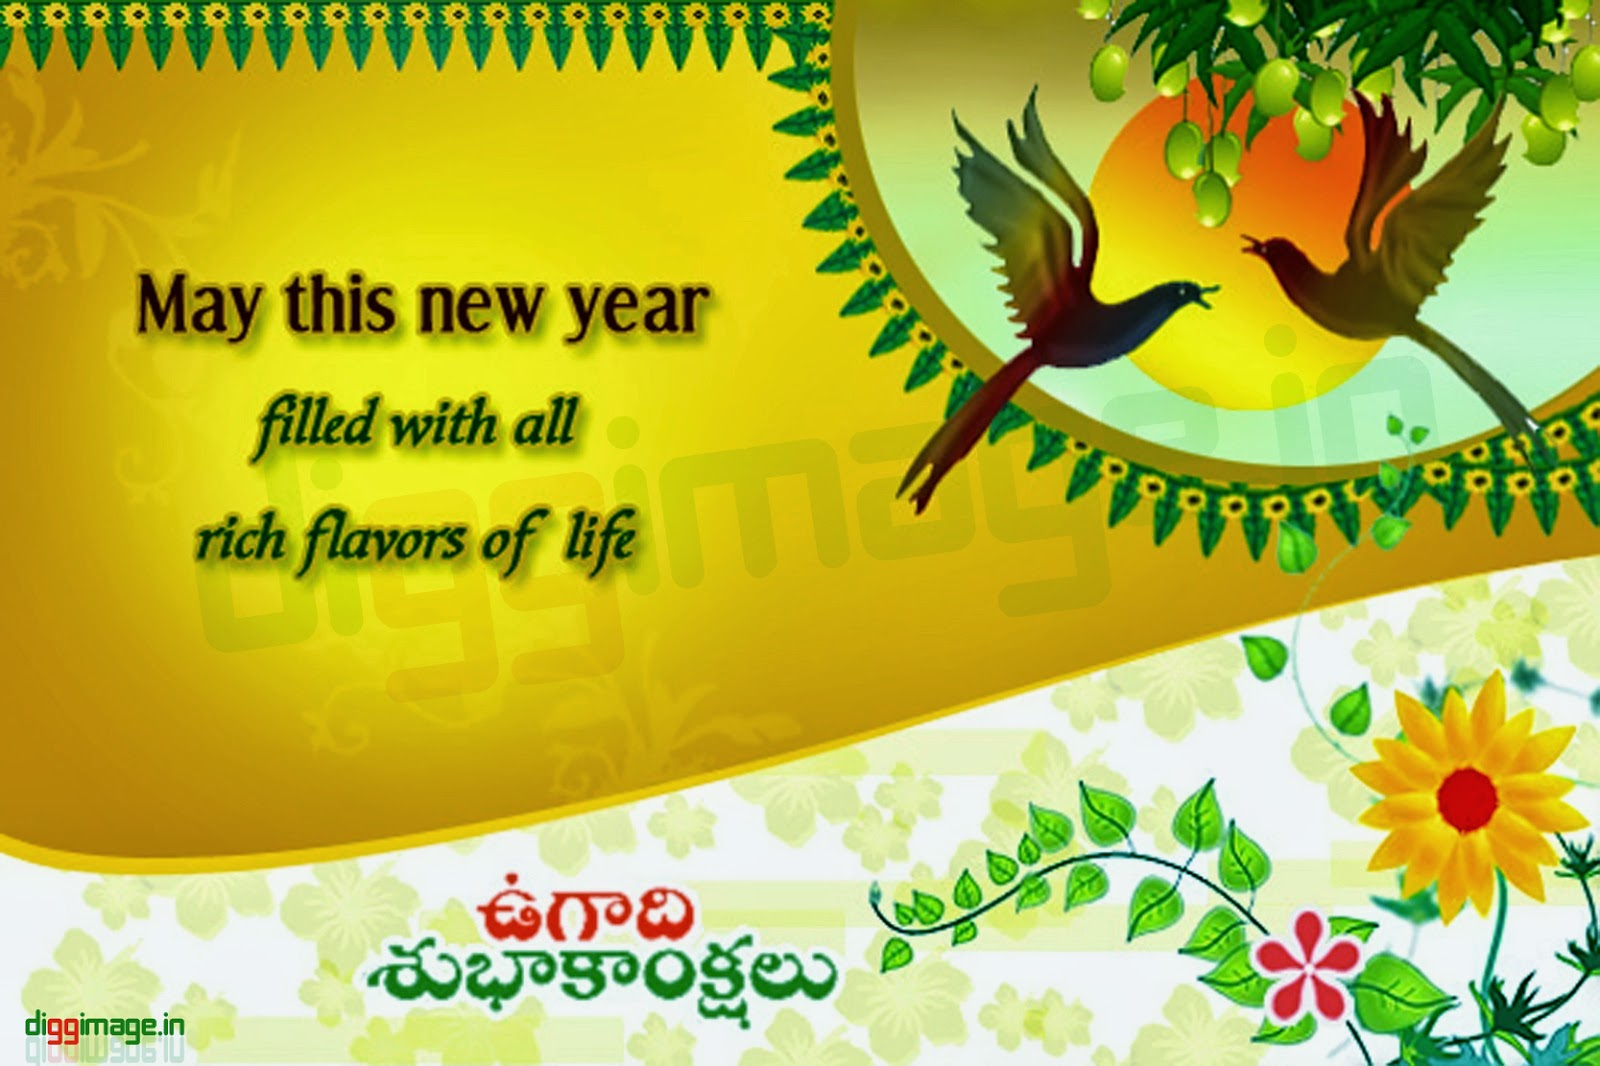 """may this Telugu new year filled with all rich flavors of life """"happy ugadi"""""""